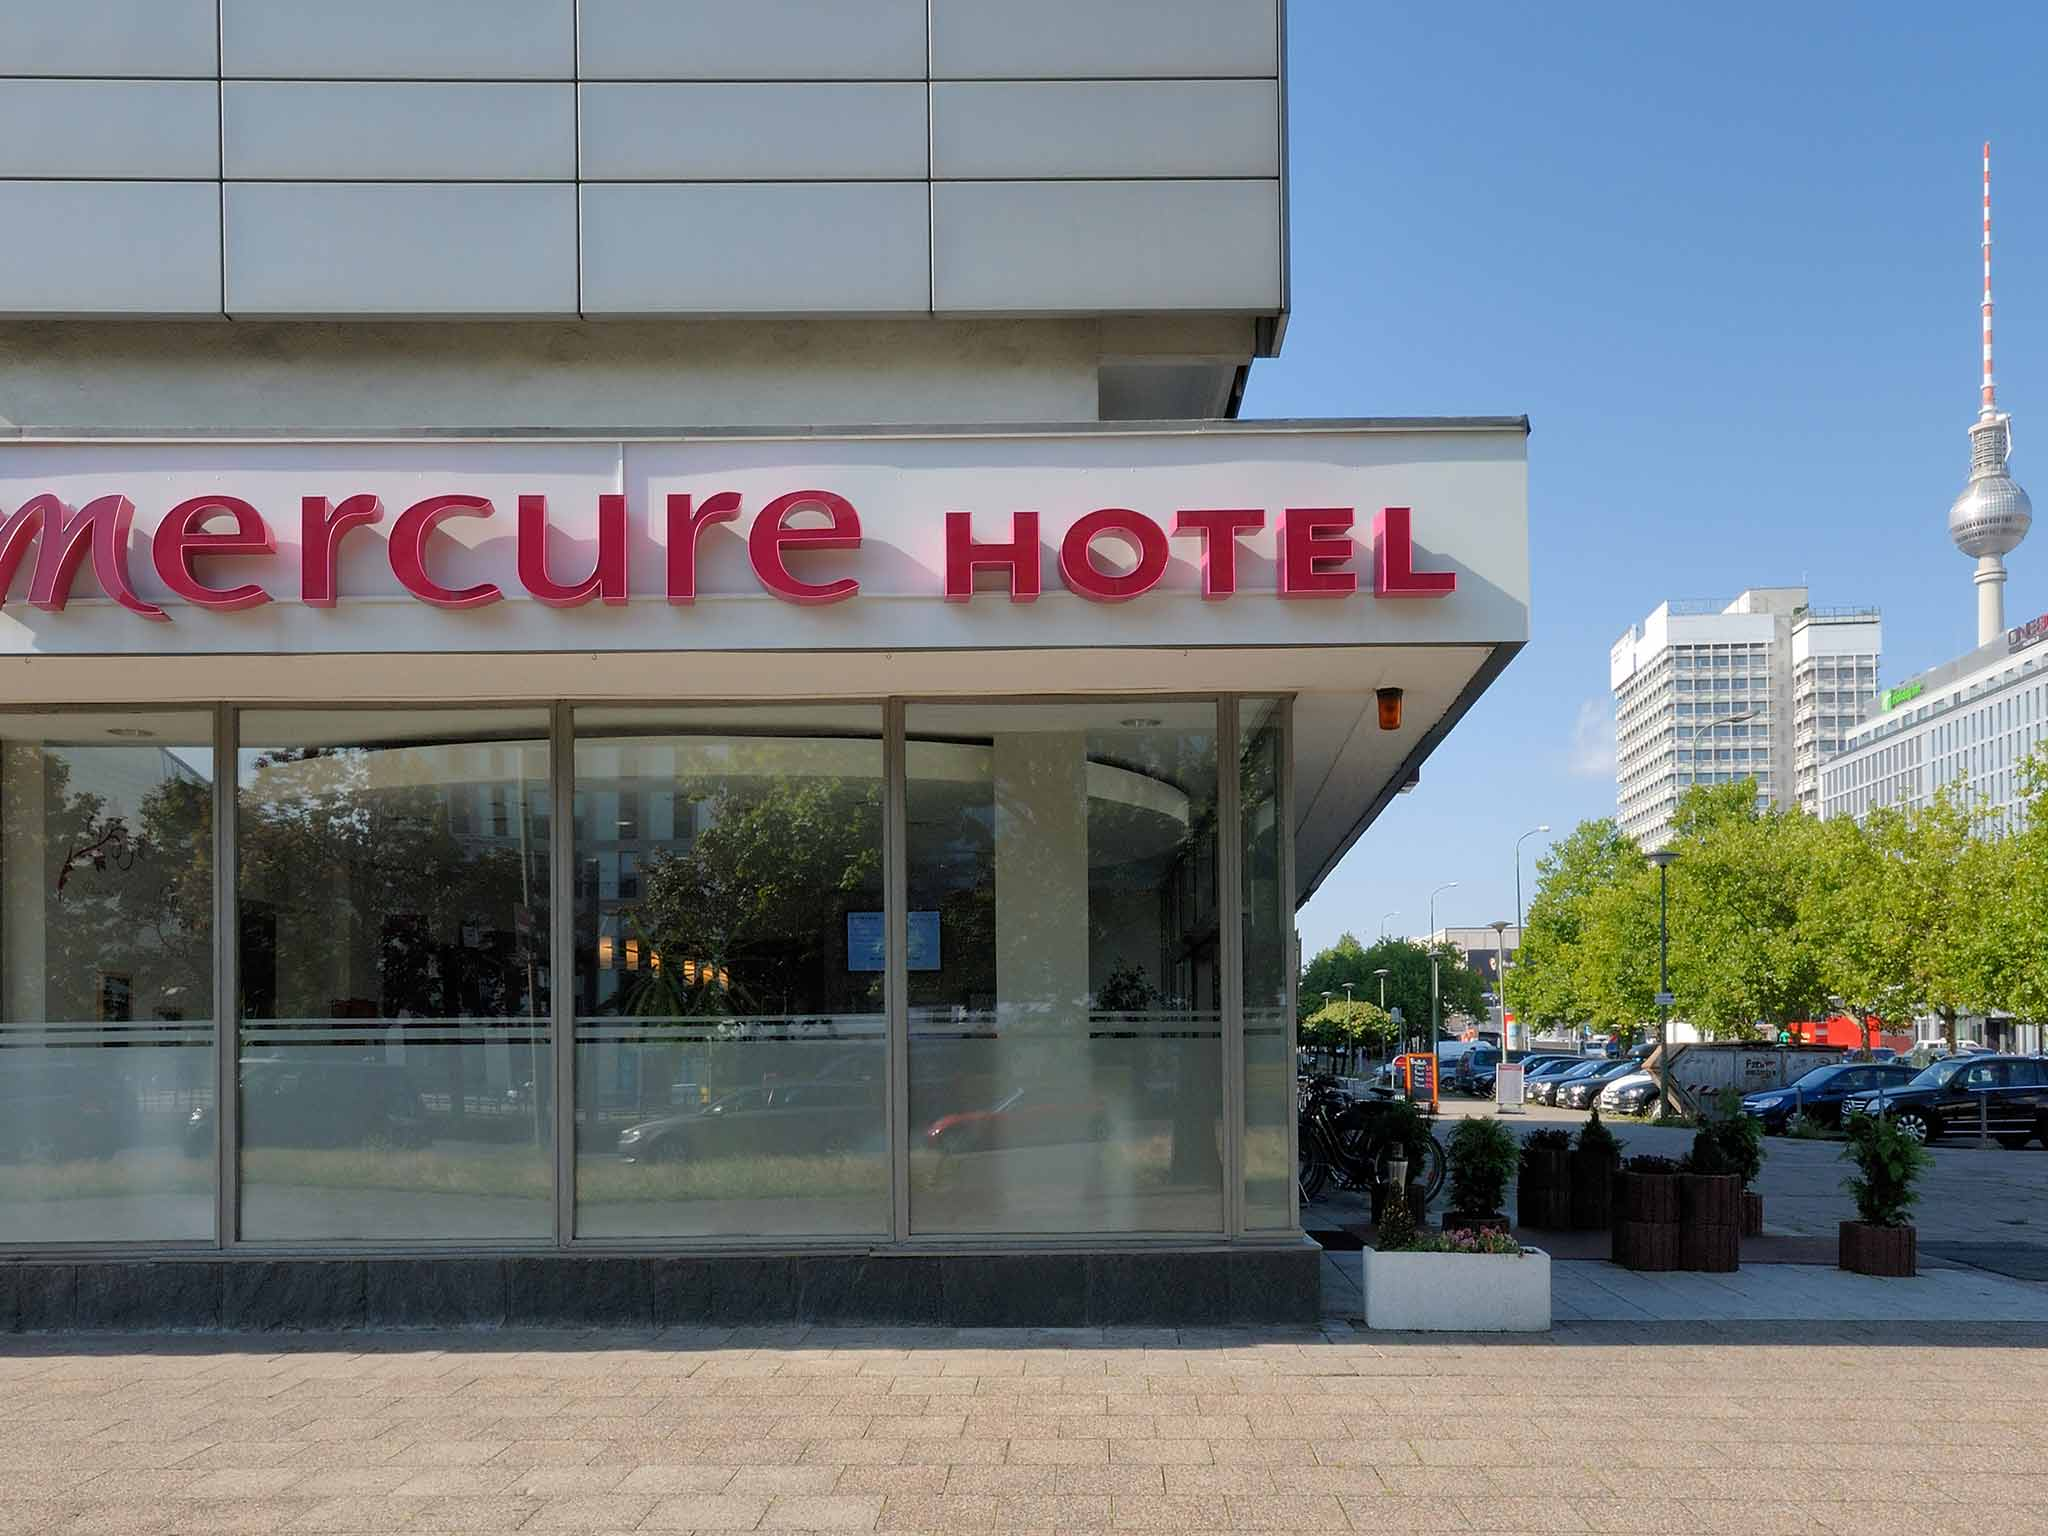 Mercure Hotel Berlin am Alexanderplatz Exterior 1